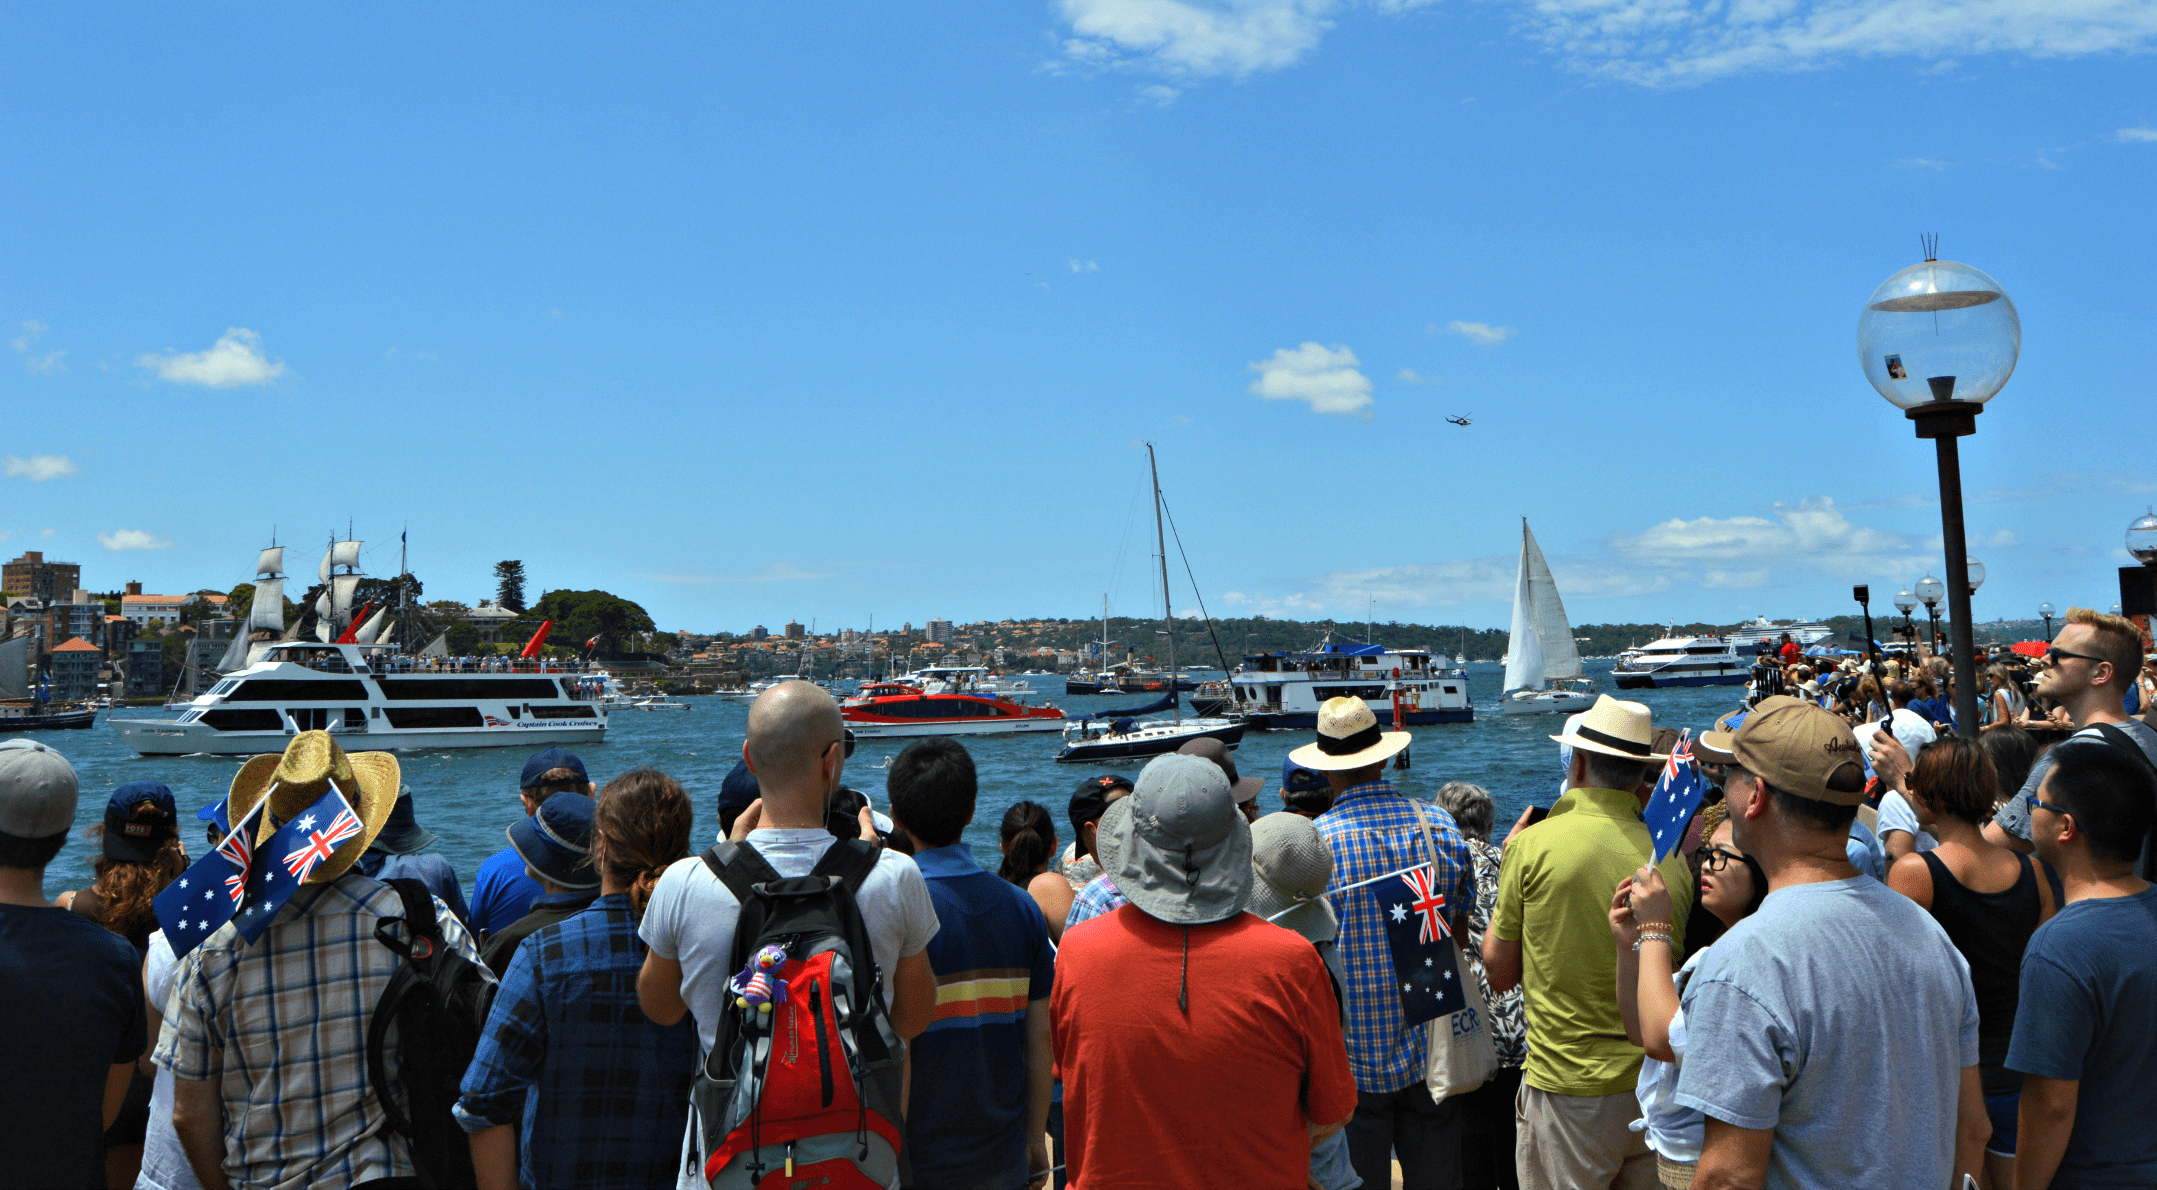 A crowd watching Australia Day celebrations in Sydney Harbour -  travel Australia with kids